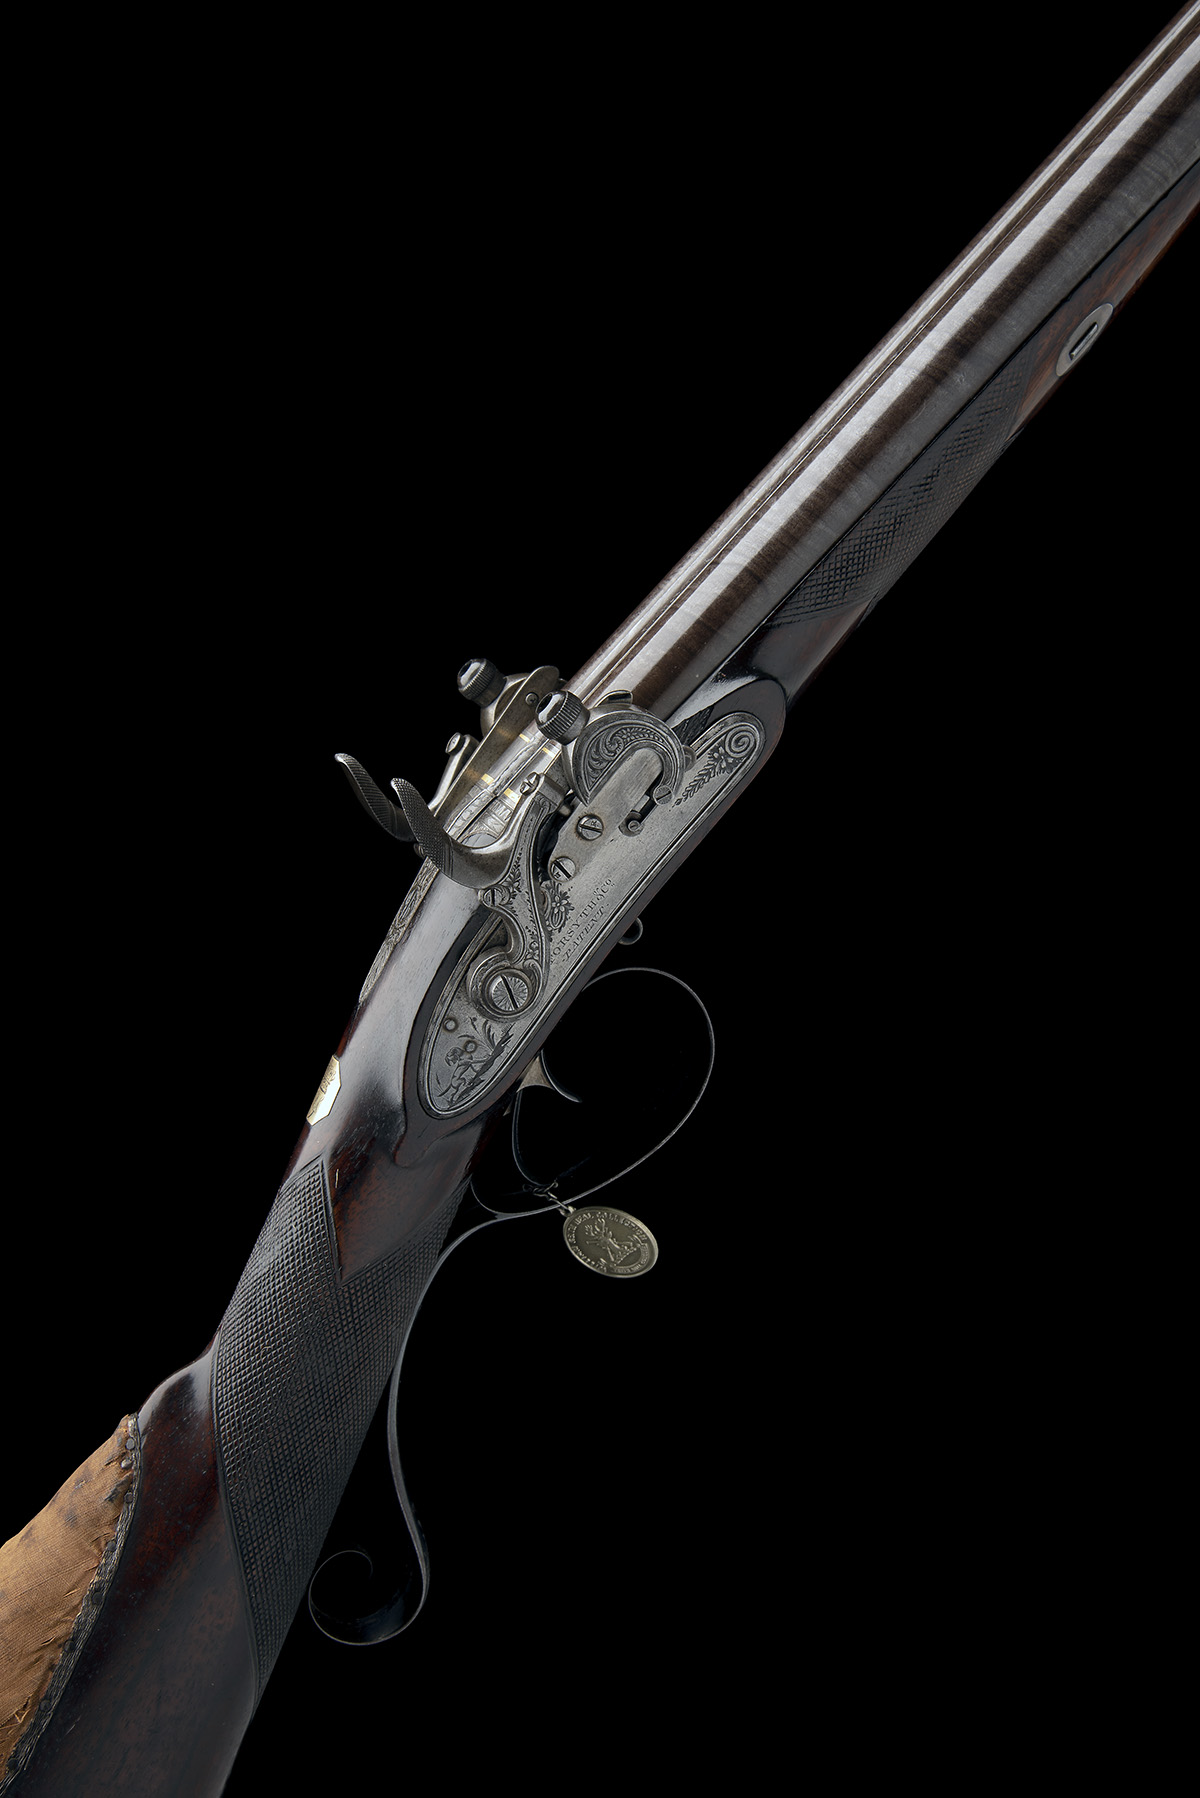 EX W. KEITH NEAL: FORSYTH & CO., LONDON AN EXCEEDINGLY RARE 19-BORE SELF-PRIMING SPORTING GUN, - Image 13 of 21